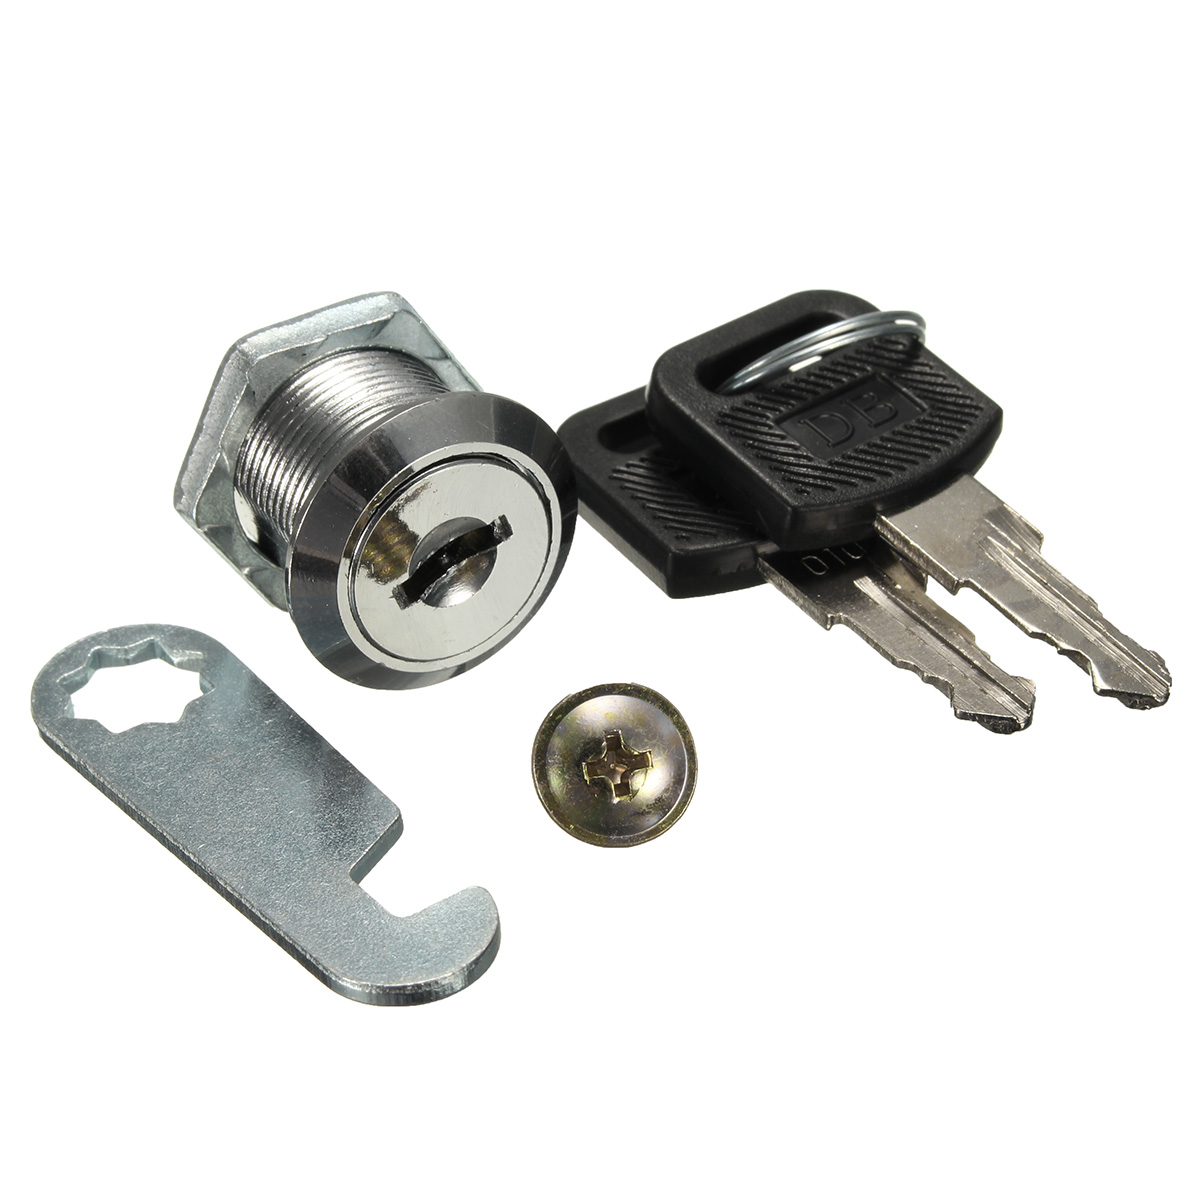 Zinc alloy cam locks 16mm 20mm filing cabinet mailbox for Cam lock kitchen cabinets